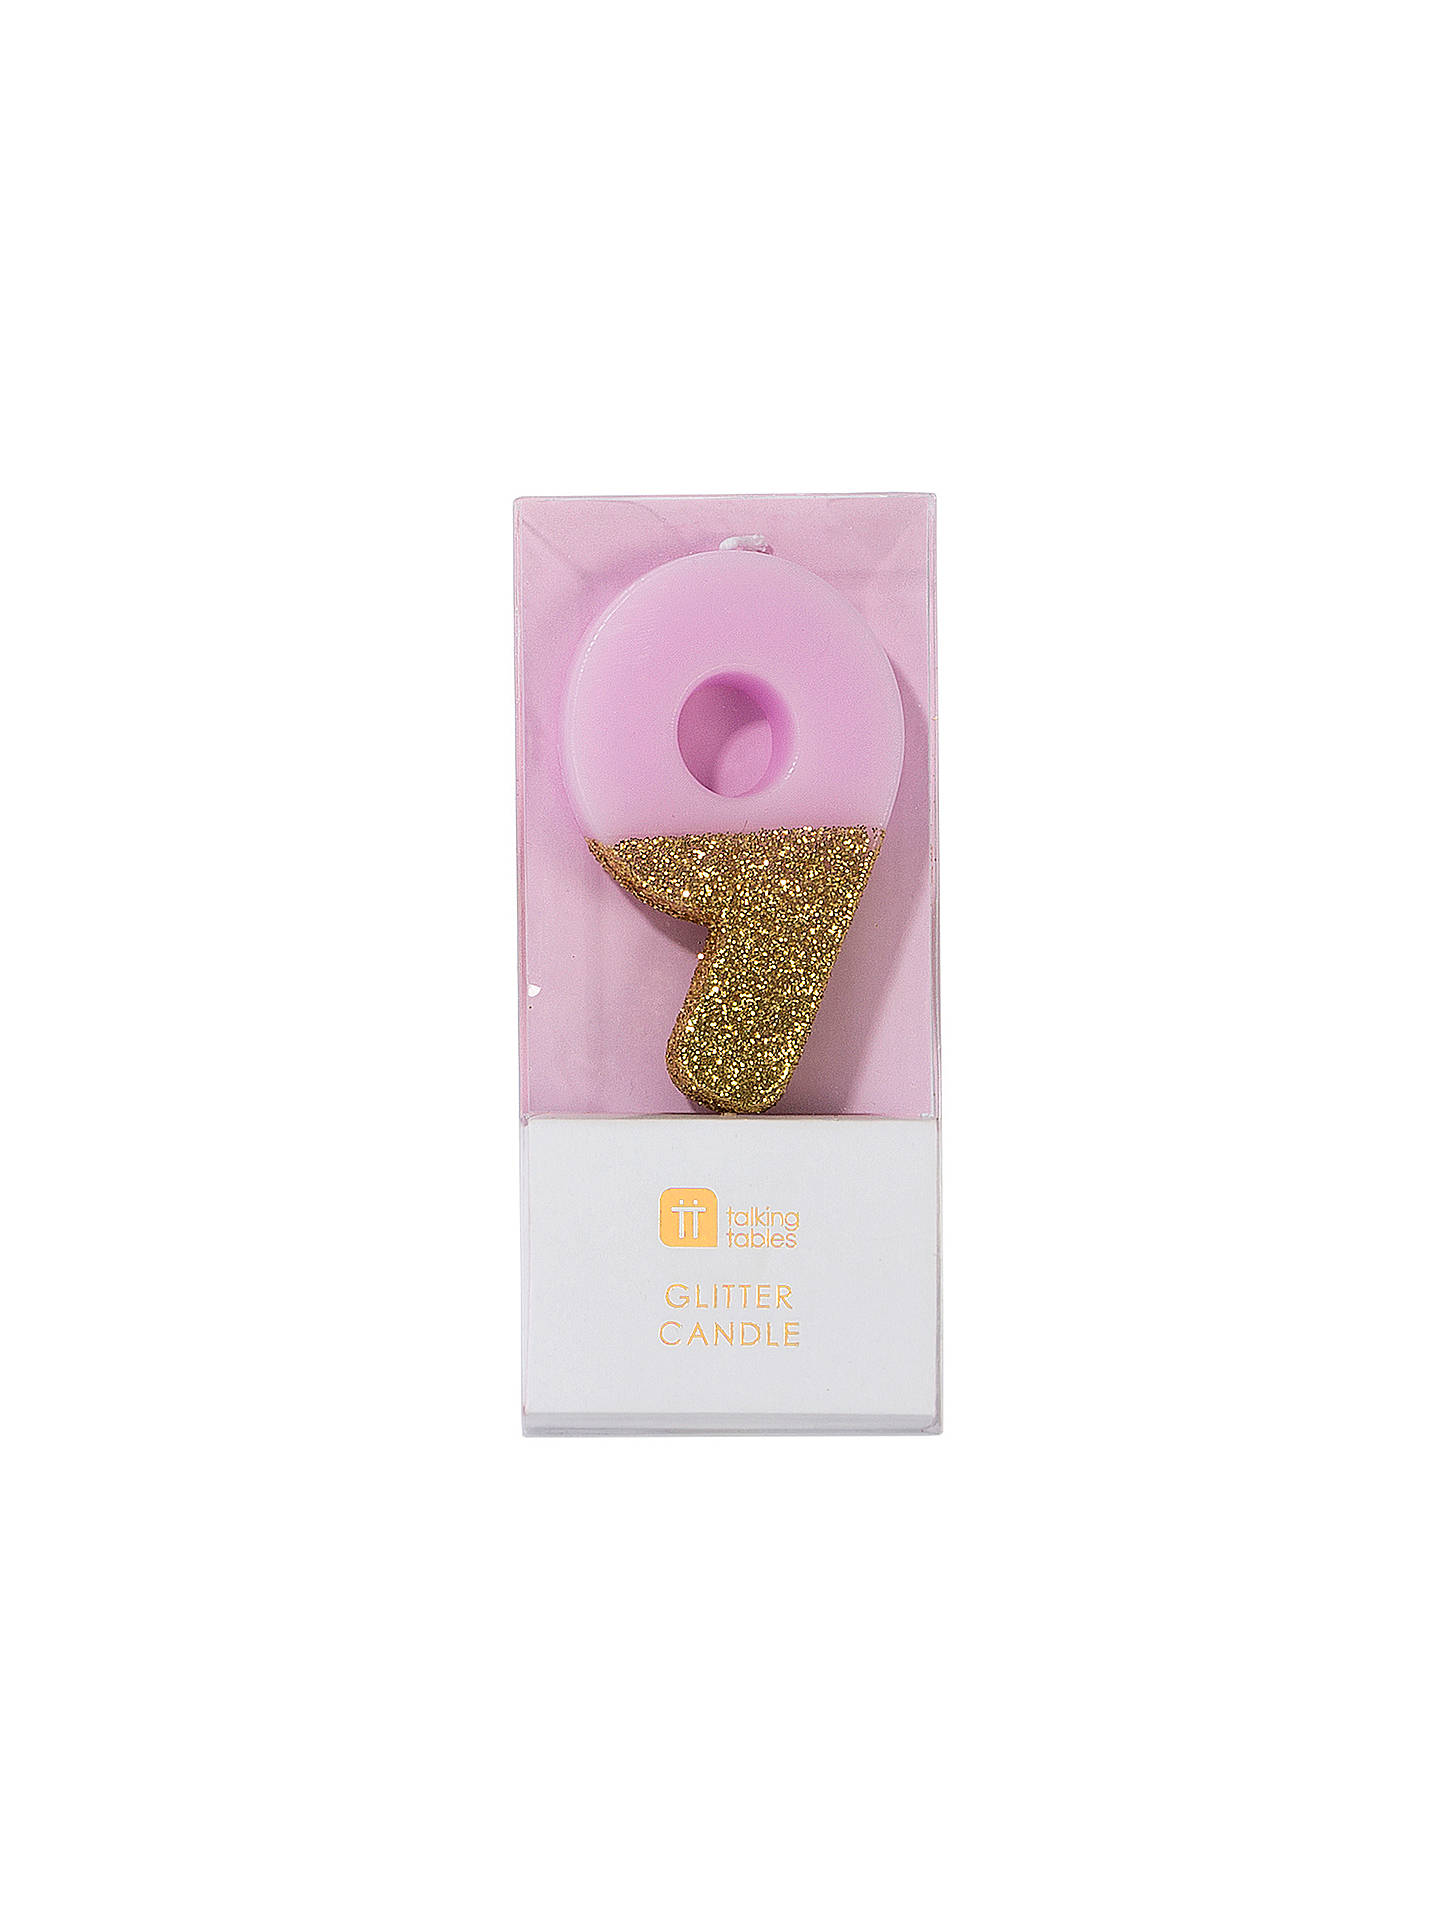 Buy Talking Tables Pink Glitter Birthday Candle, No. 9 Online at johnlewis.com